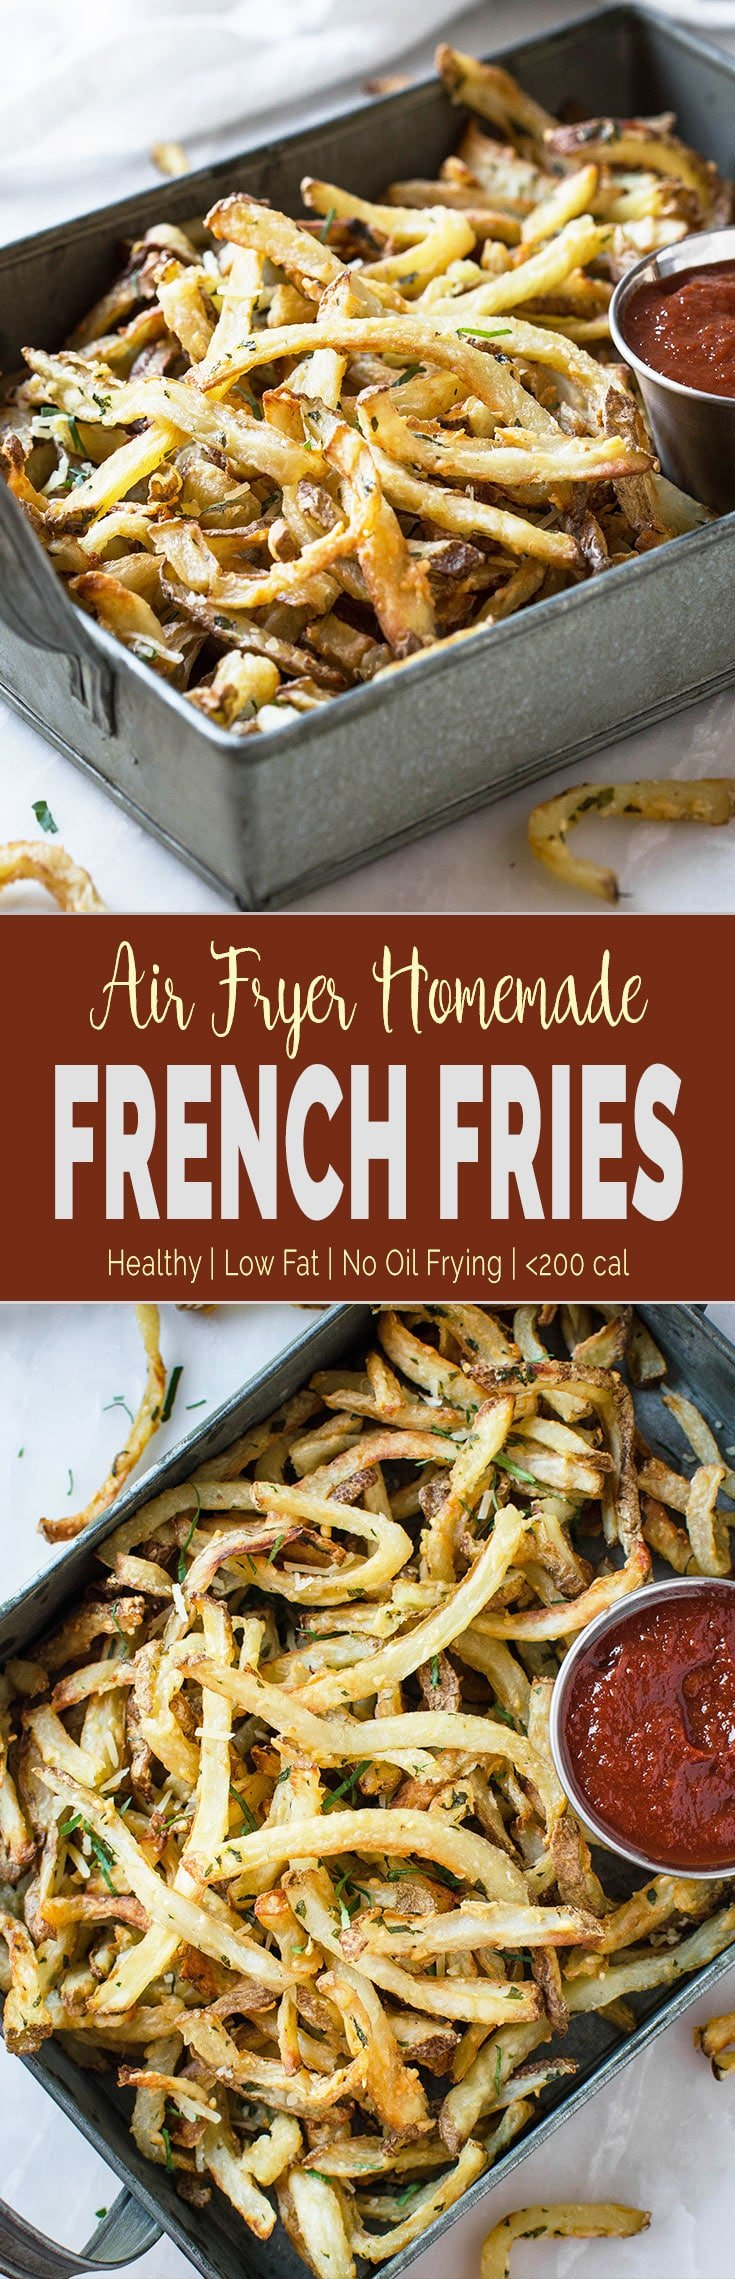 Low Fat Air Fryer French Fries - Healthy homemade French Fries without the need to deep fry in oil. You can make them anytime you crave for french fries. | #airfryer #frenchfries #lowfat #healthyfries